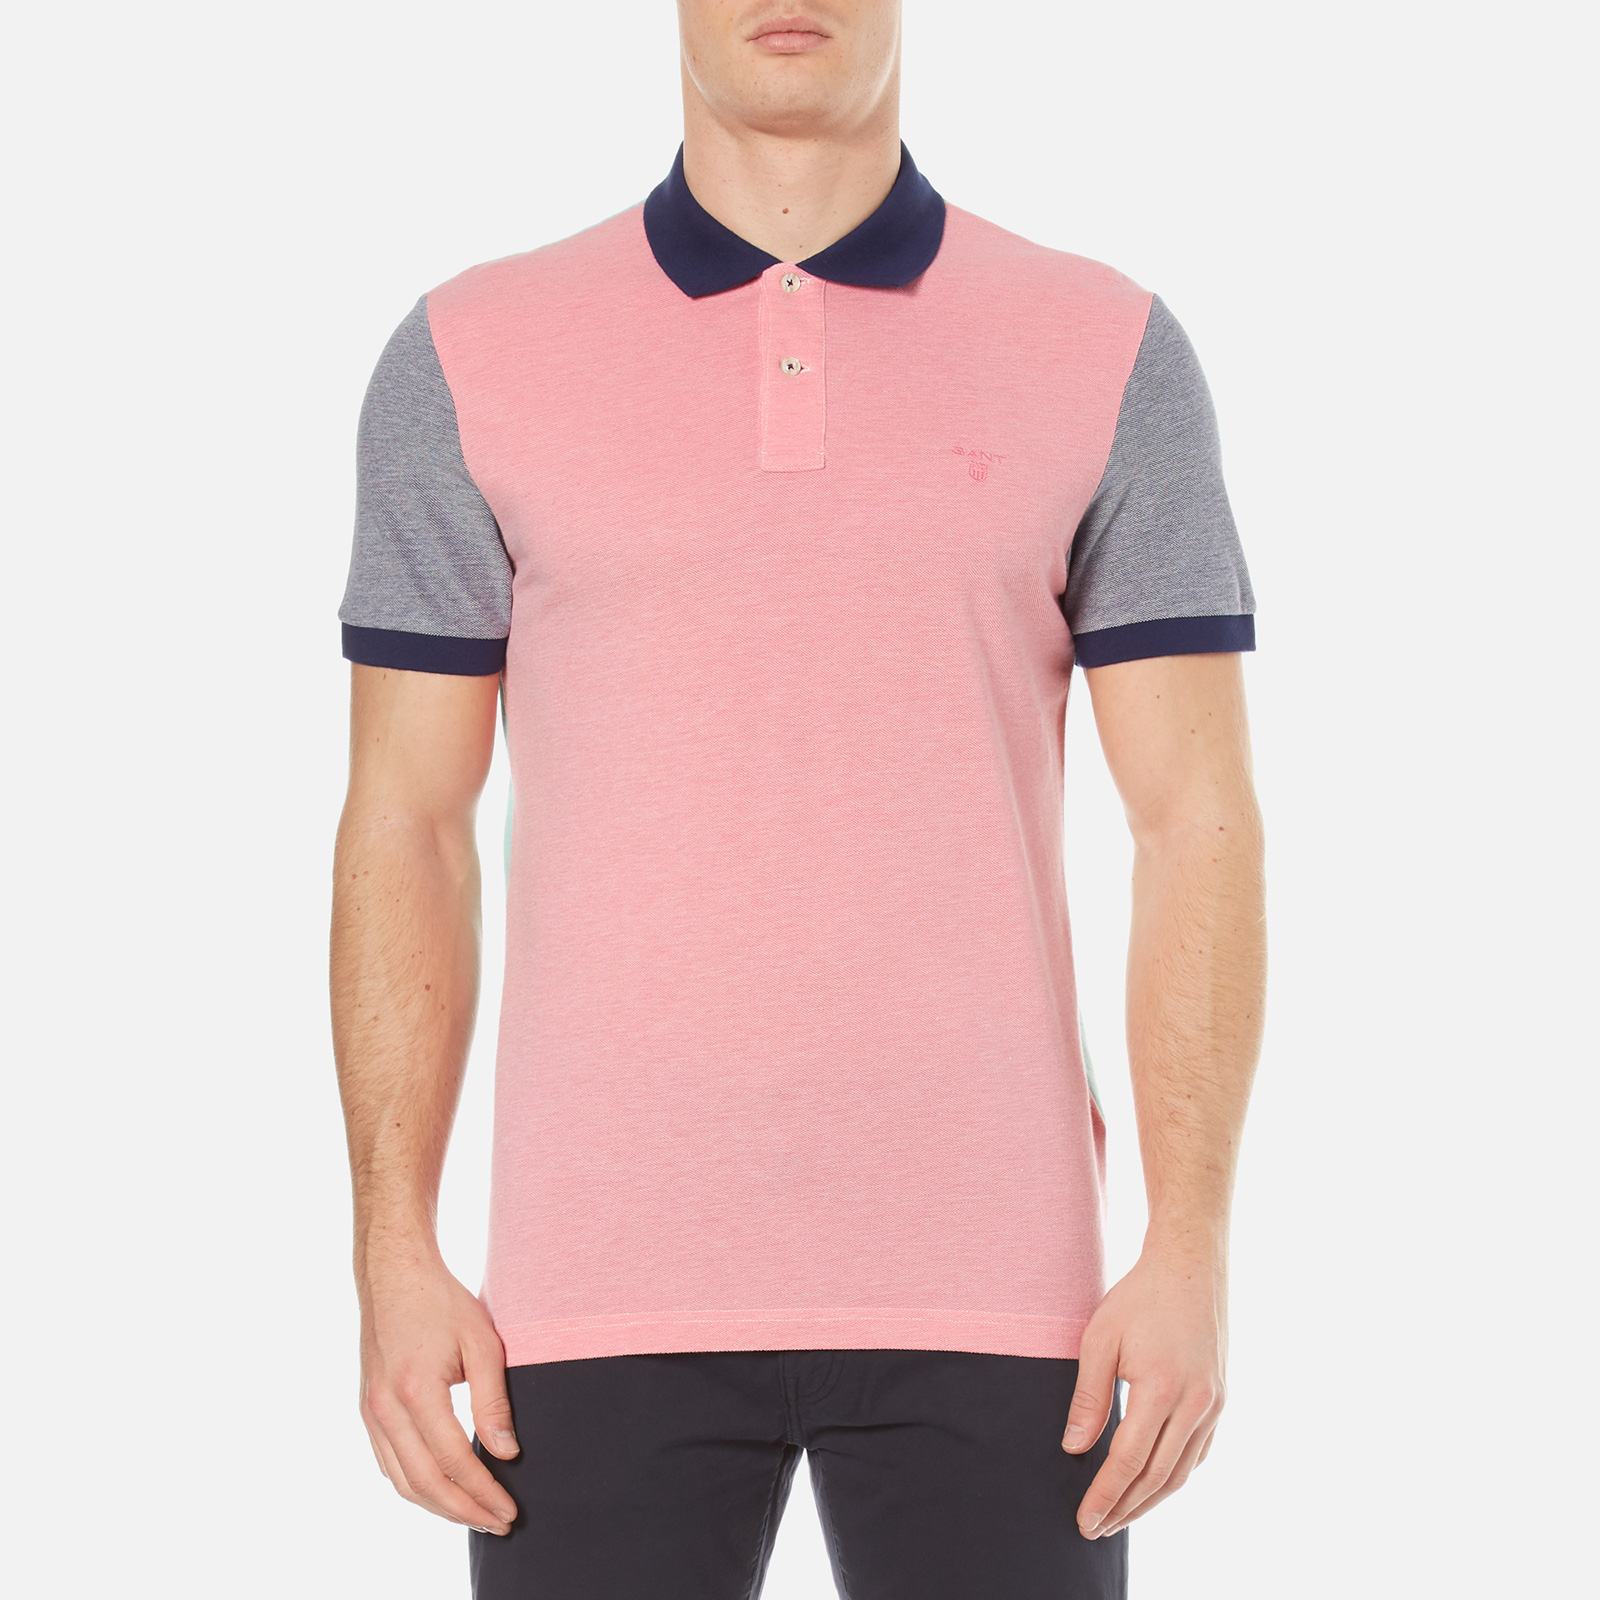 d495a084d68 GANT Men's Colour Block Oxford Rugger Polo Shirt - Bright Magenta Clothing  | TheHut.com